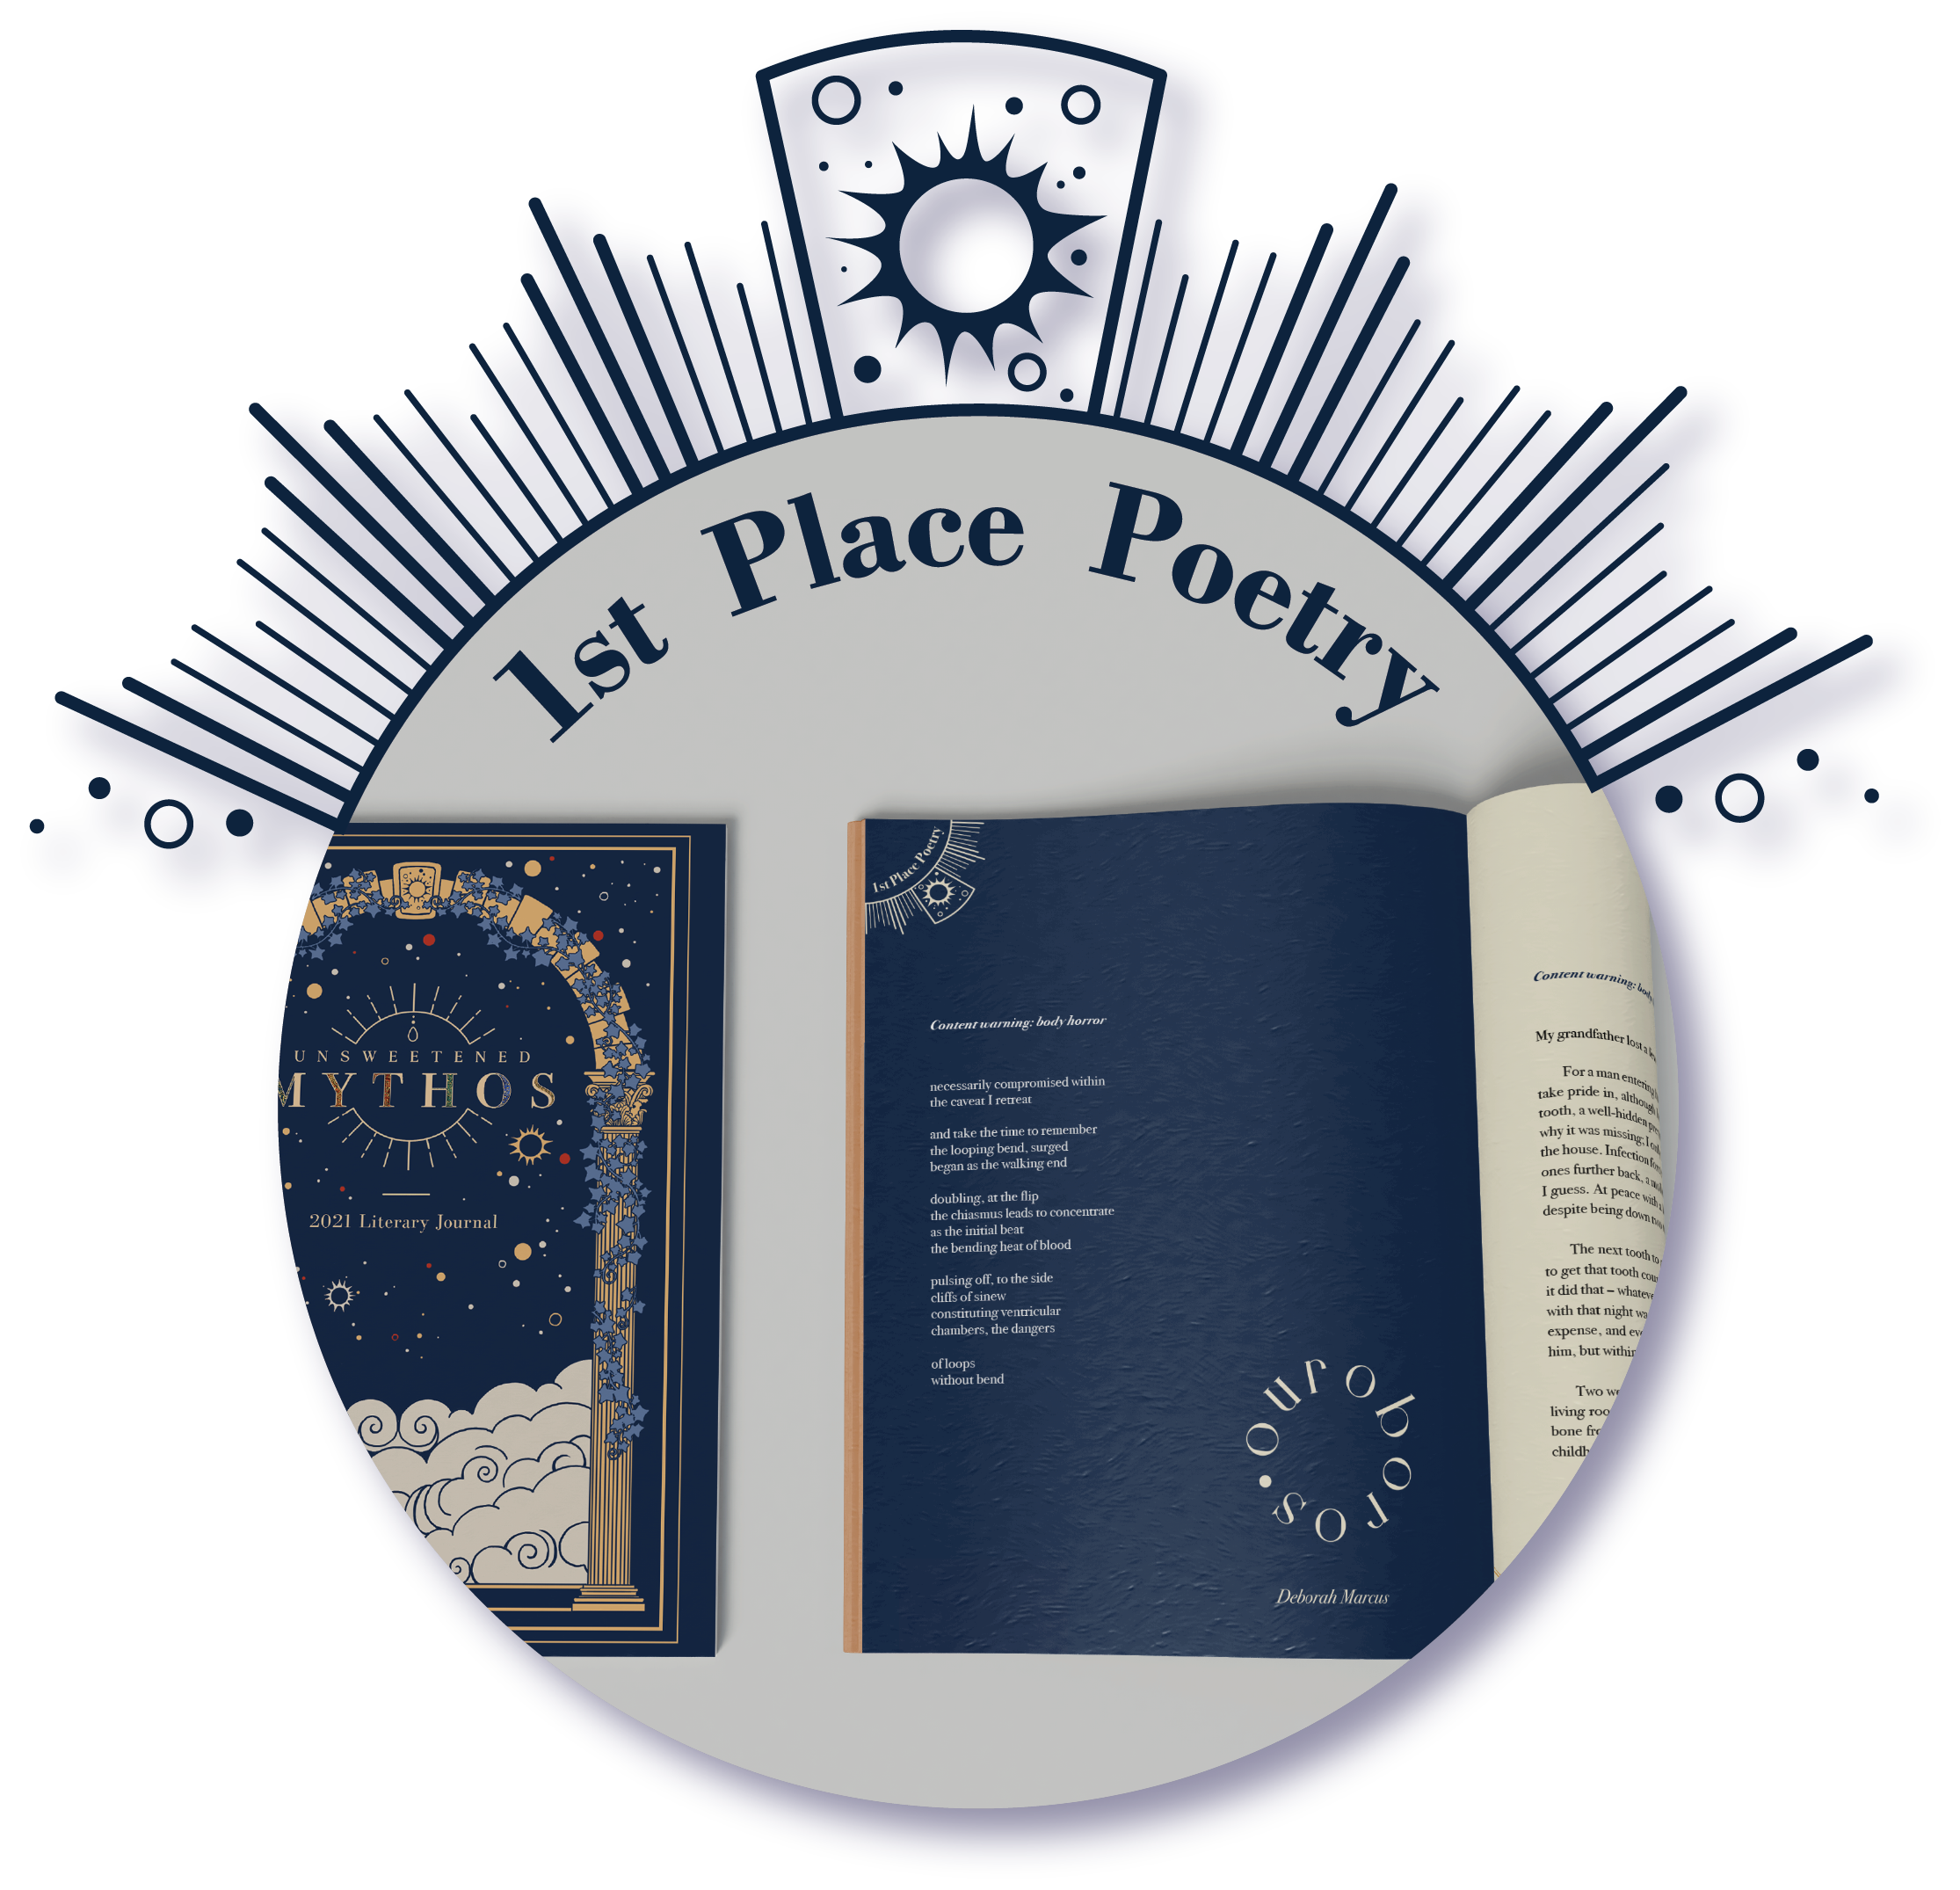 The prize-winner logo for 1stplace poetry, showing the journal page for 'Ouroboros' by Deborah Marcus.